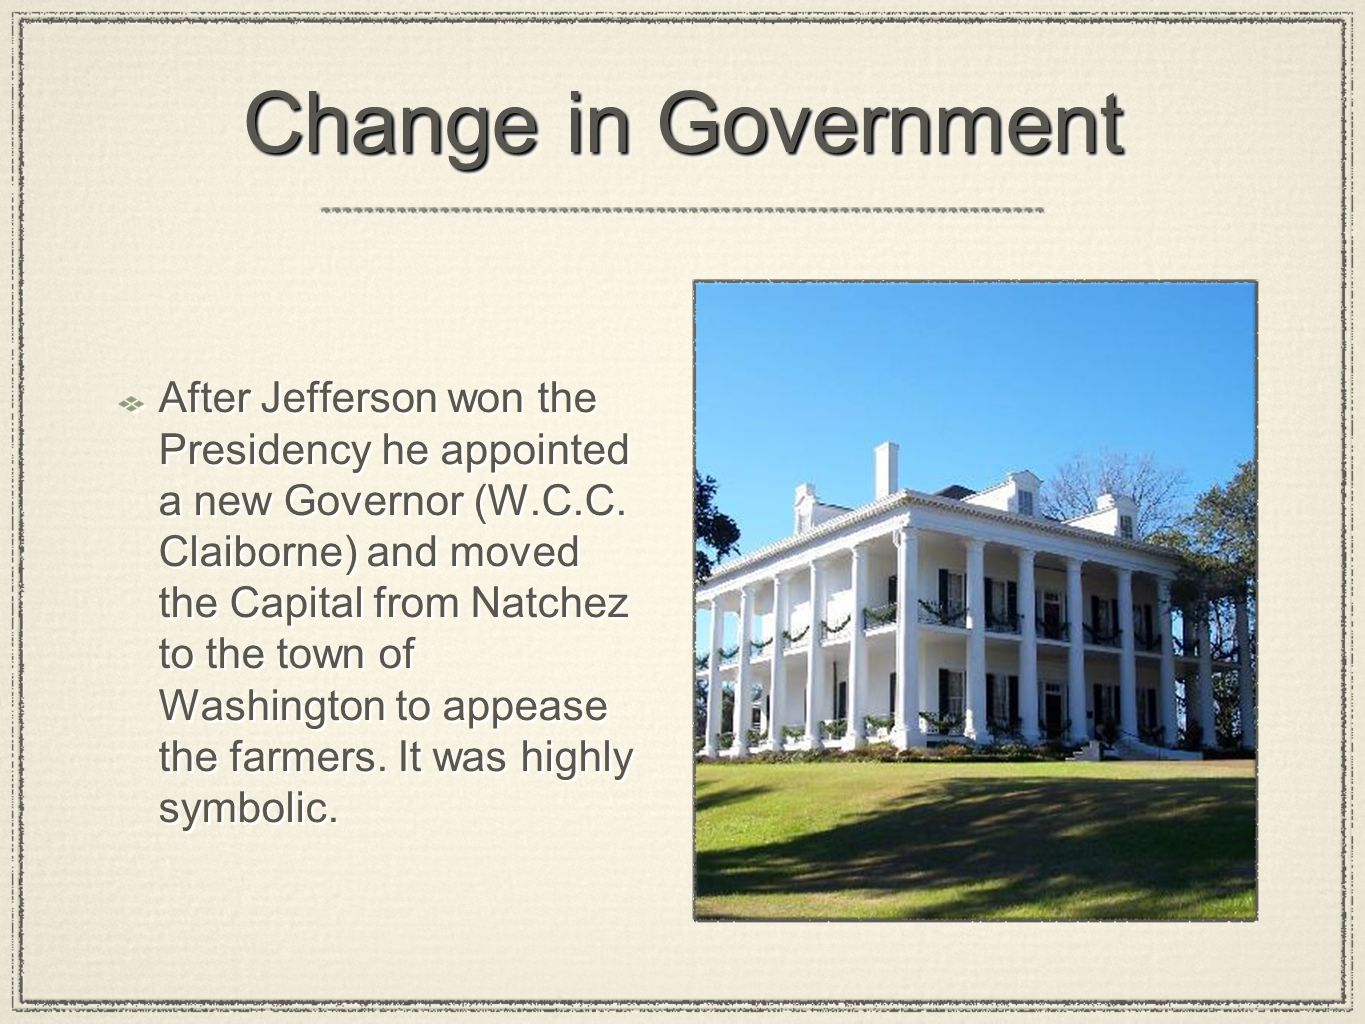 Change in Government After Jefferson won the Presidency he appointed a new Governor (W.C.C. Claiborne) and moved the Capital from Natchez to the town